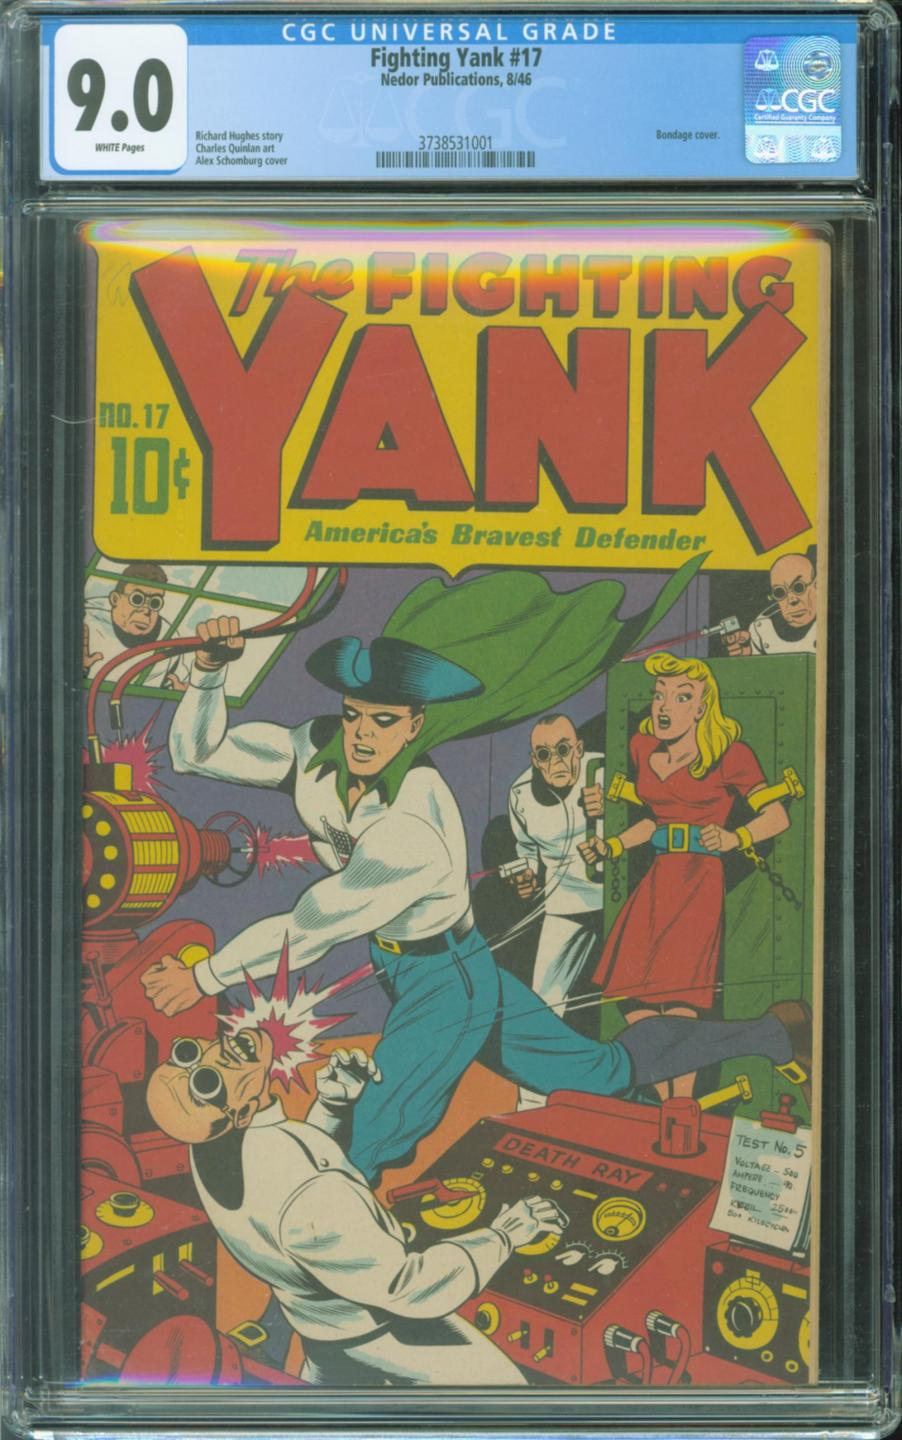 Cover Scan: FIGHTING YANK #17